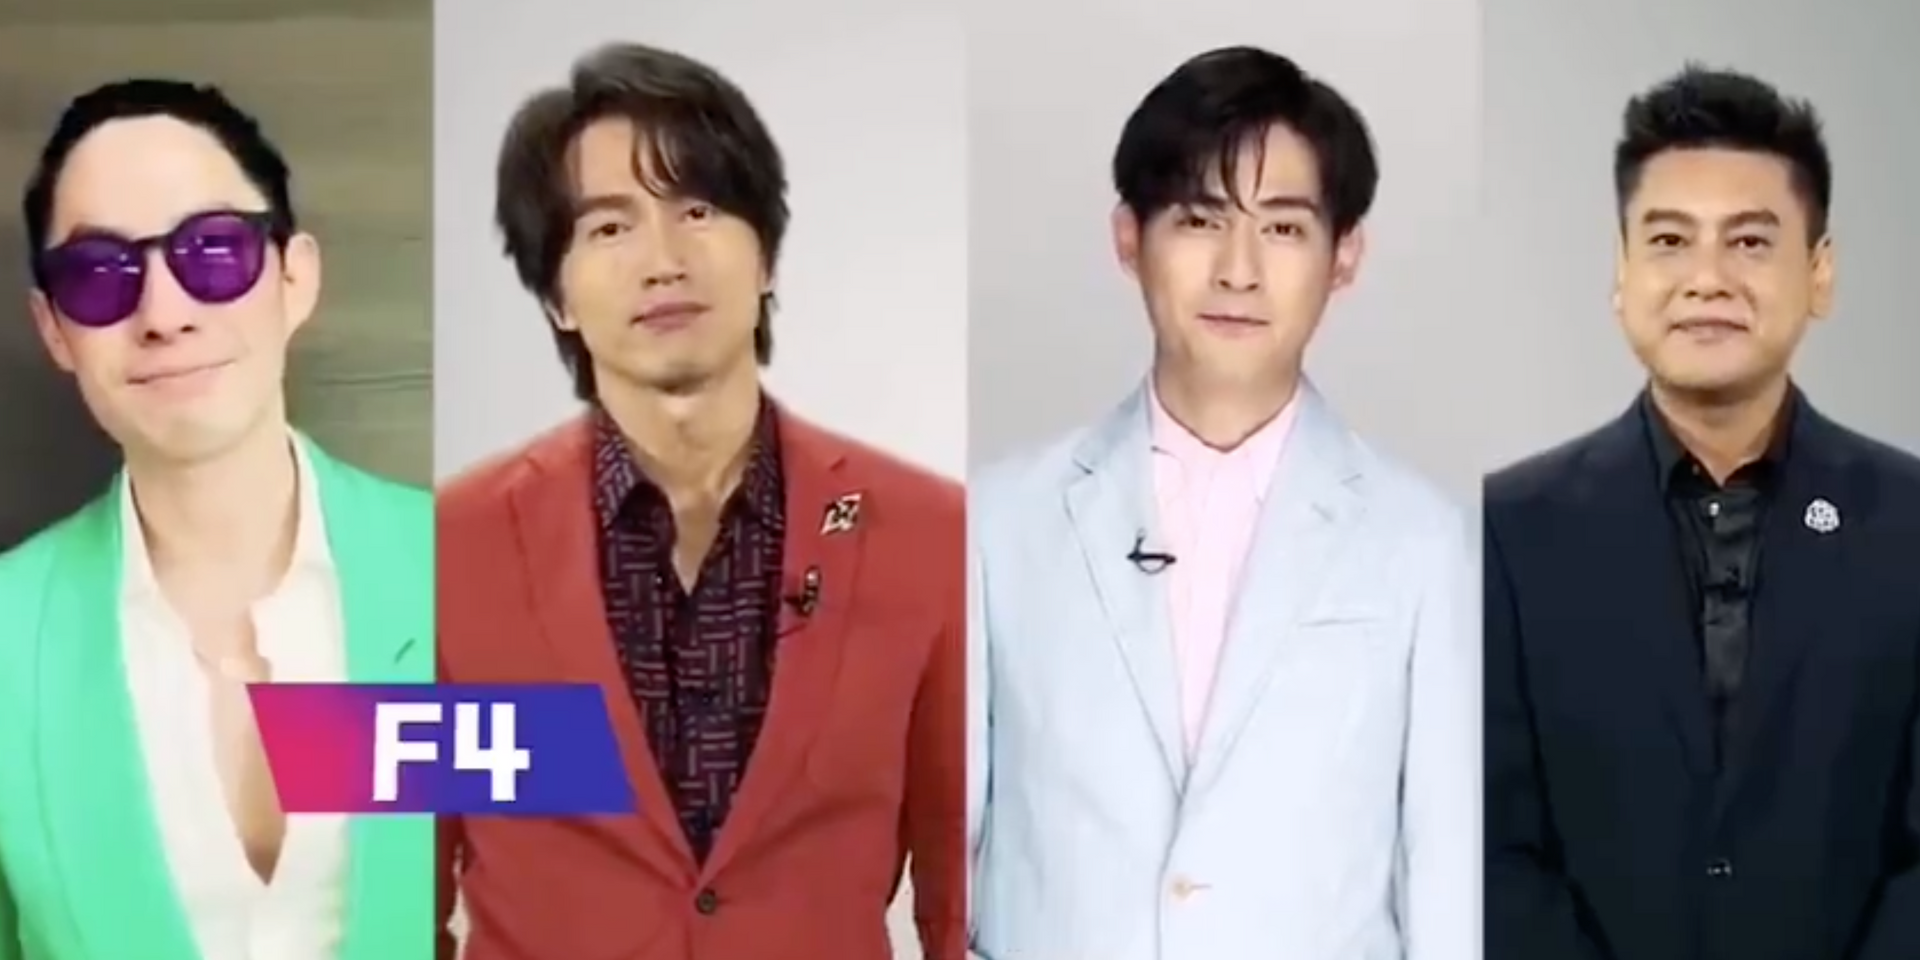 Taiwanese boyband F4 are back for a reunion show